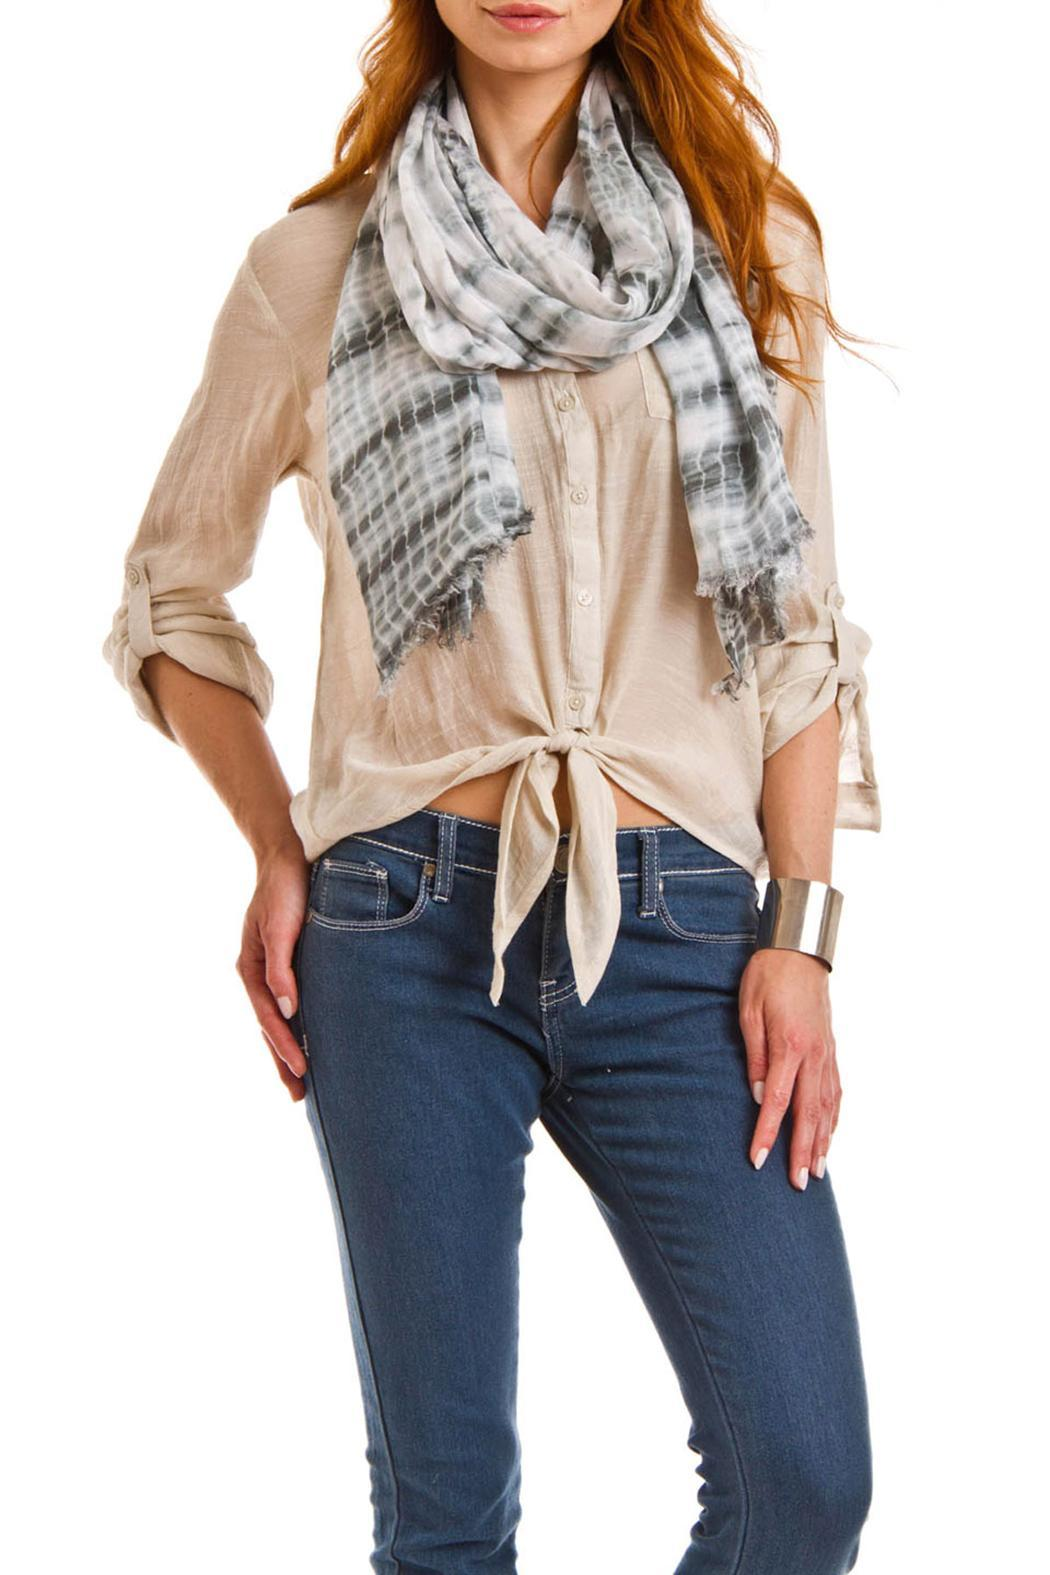 Violet Del Mar Tie-Dye Grey Scarf - Side Cropped Image